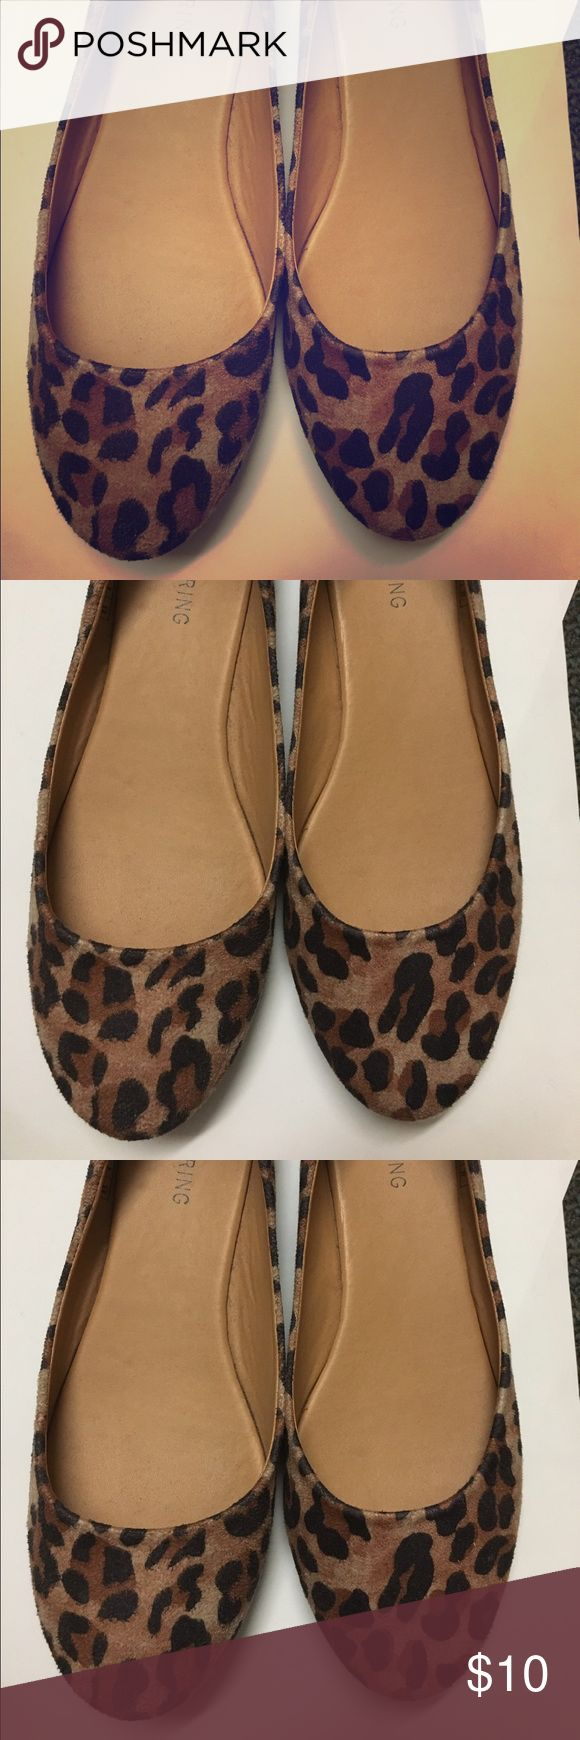 Call Spring Cheetah Print Flats Call Spring Cheetah Print Flats. Worn once excellent Condition. Call It Spring Shoes Flats & Loafers